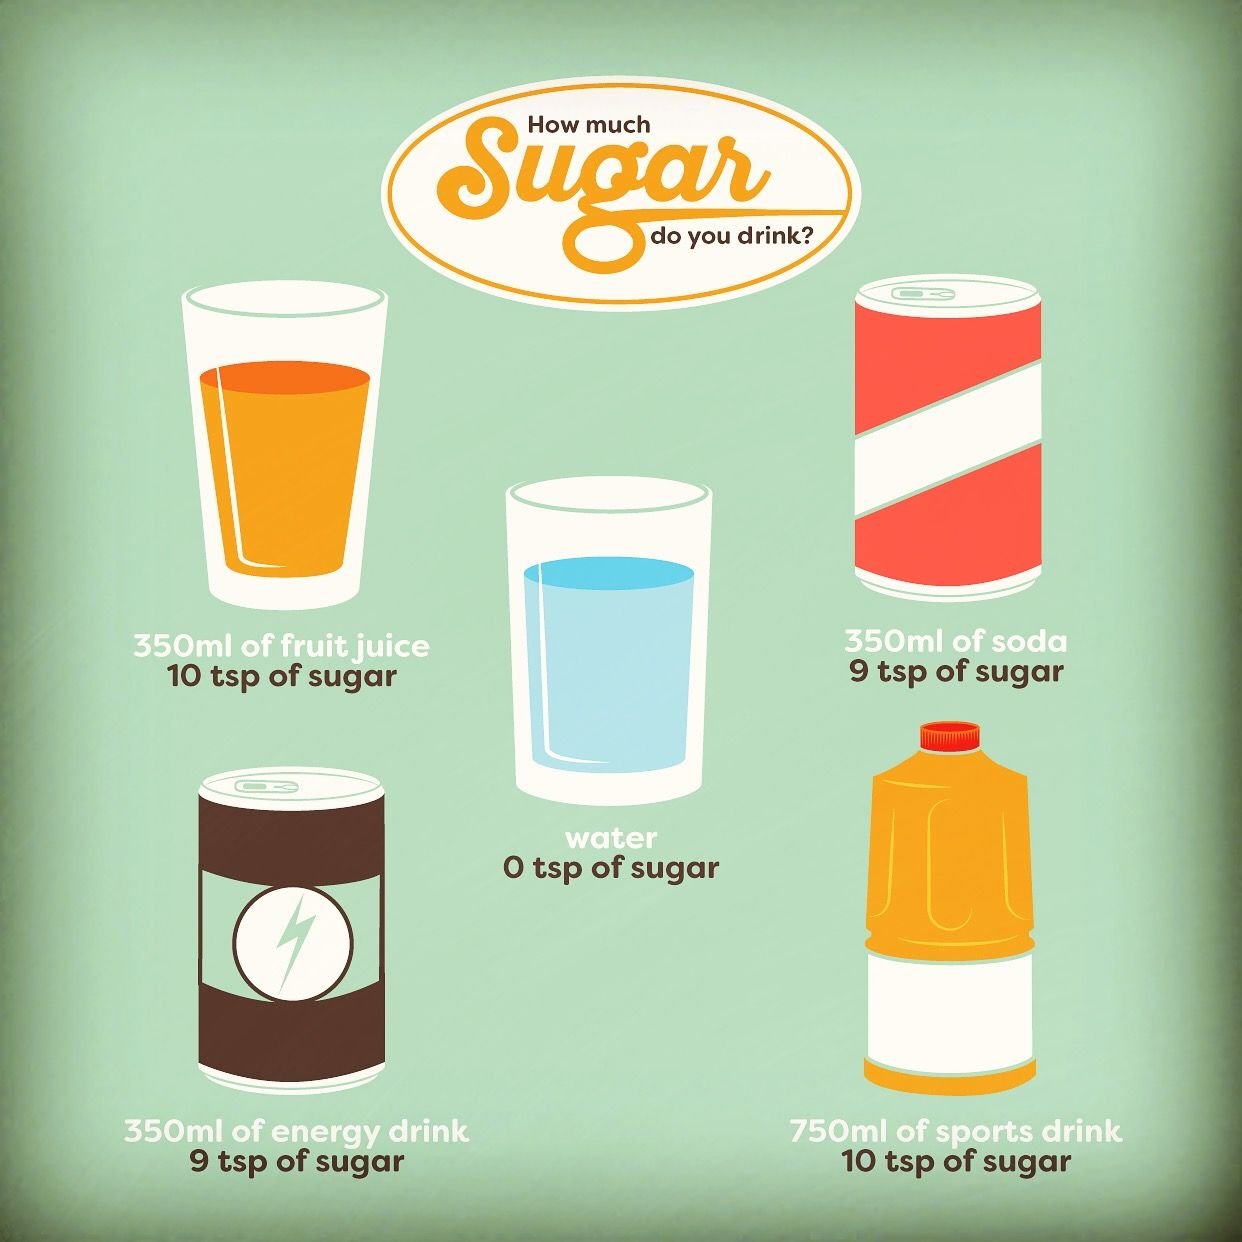 HOW MUCH SUGAR is in your favorite drinks? Check the label